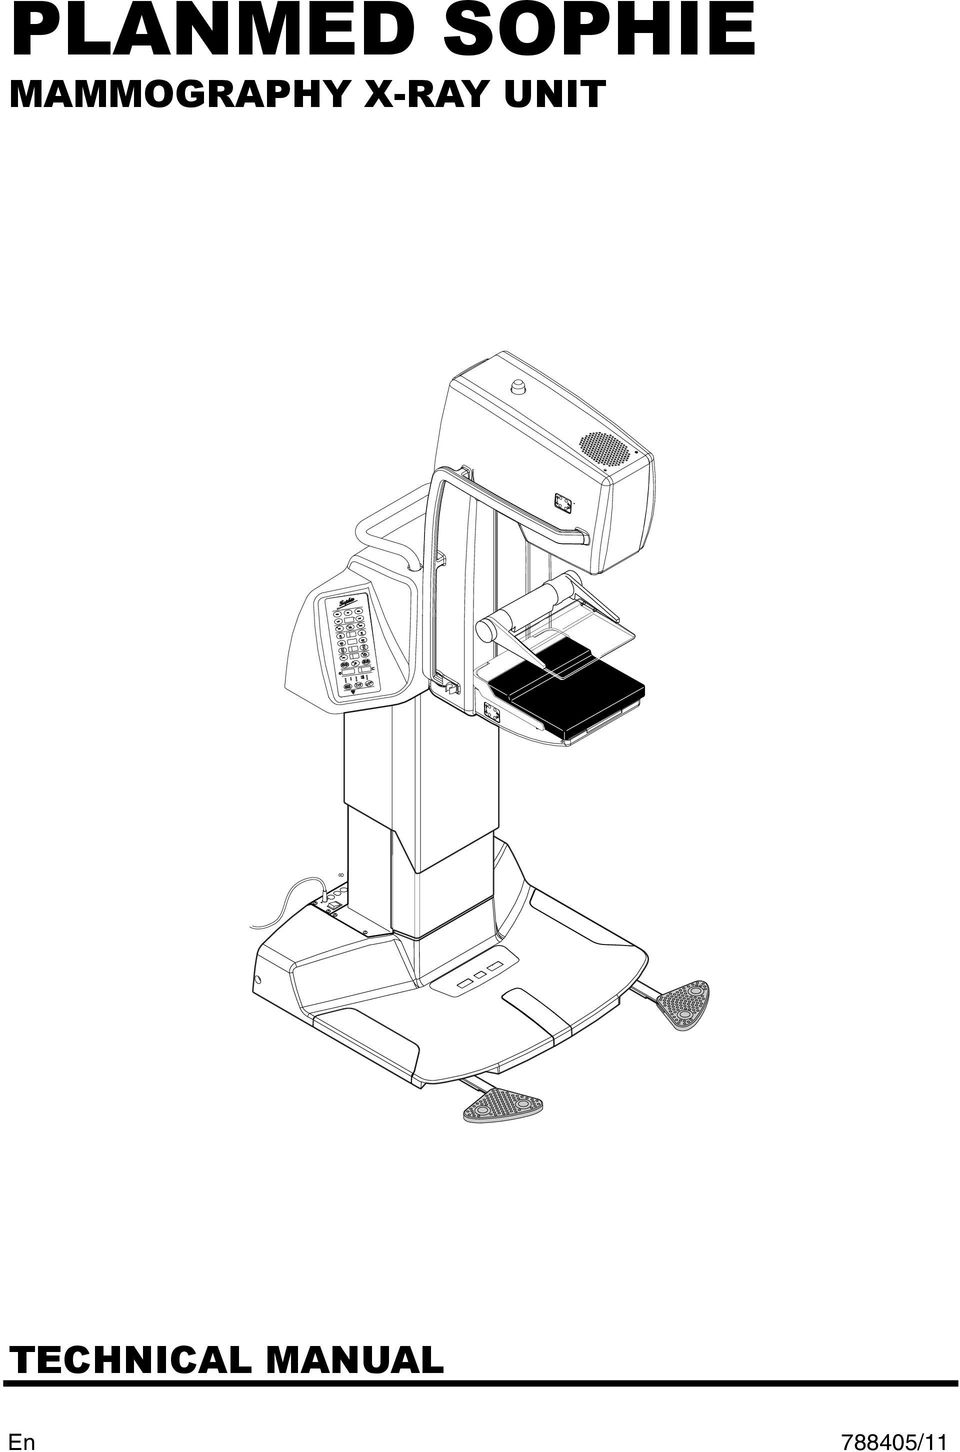 PLANMED SOPHIE MAMMOGRAPHY X-RAY UNIT TECHNICAL MANUAL /11